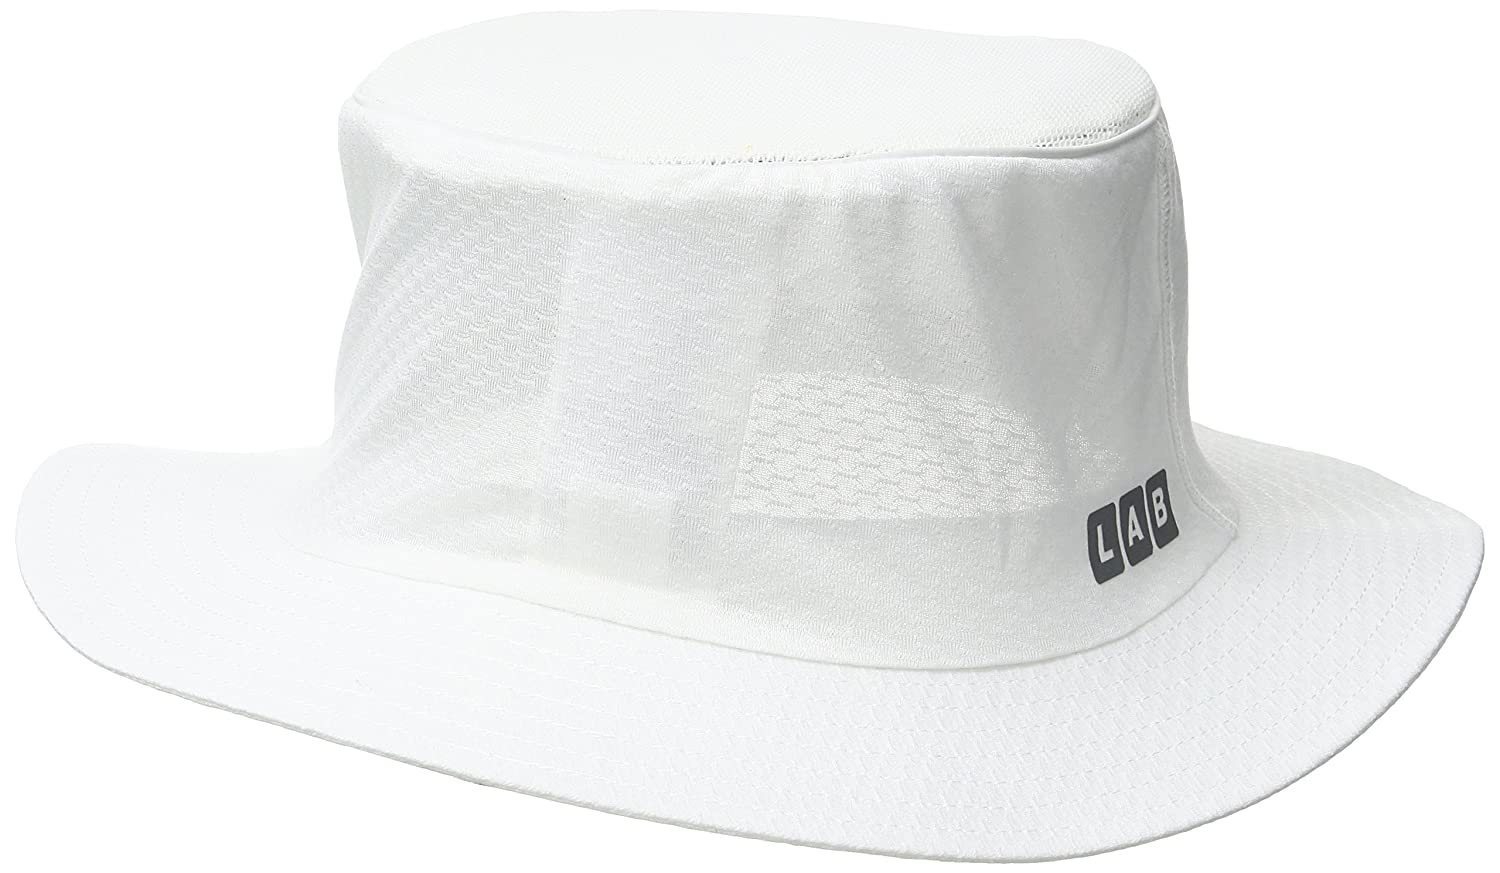 c9addcf8d Salomon S-Lab Speed Bob Men's Hat, Mens, L39325400_L/XL, white, L-XL:  Amazon.co.uk: Sports & Outdoors